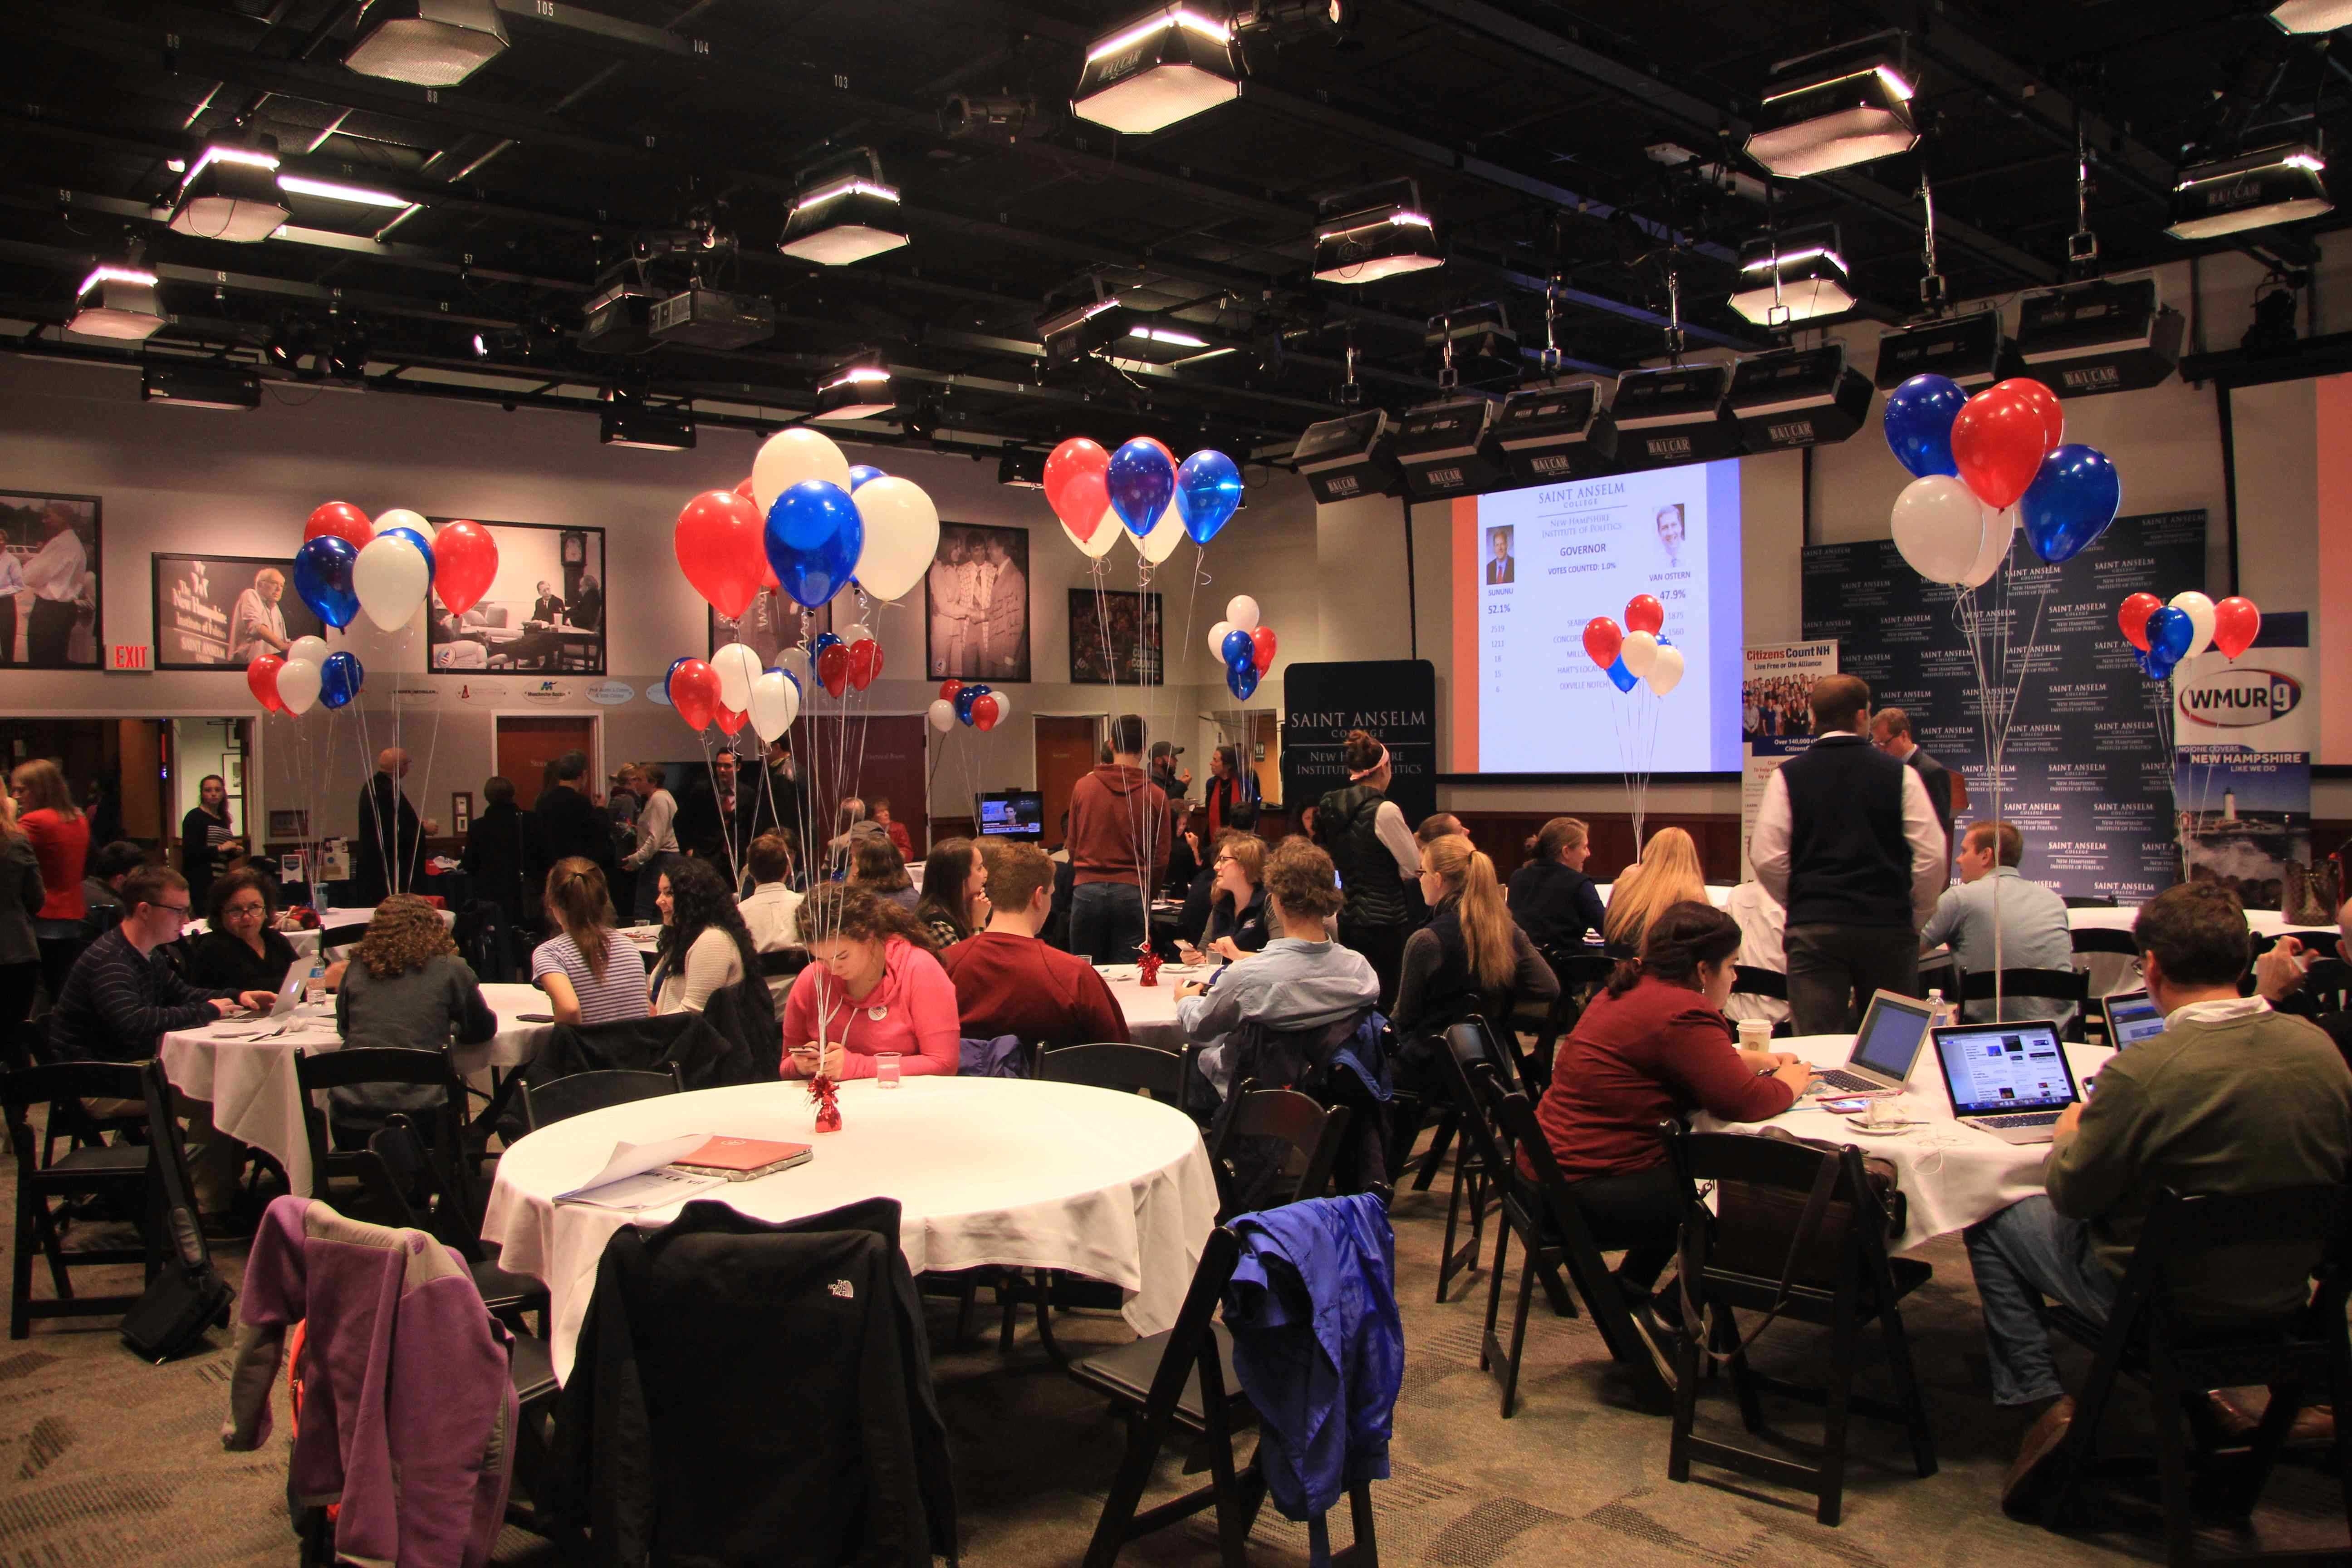 The scene in the NHIOP Auditorium on election night.